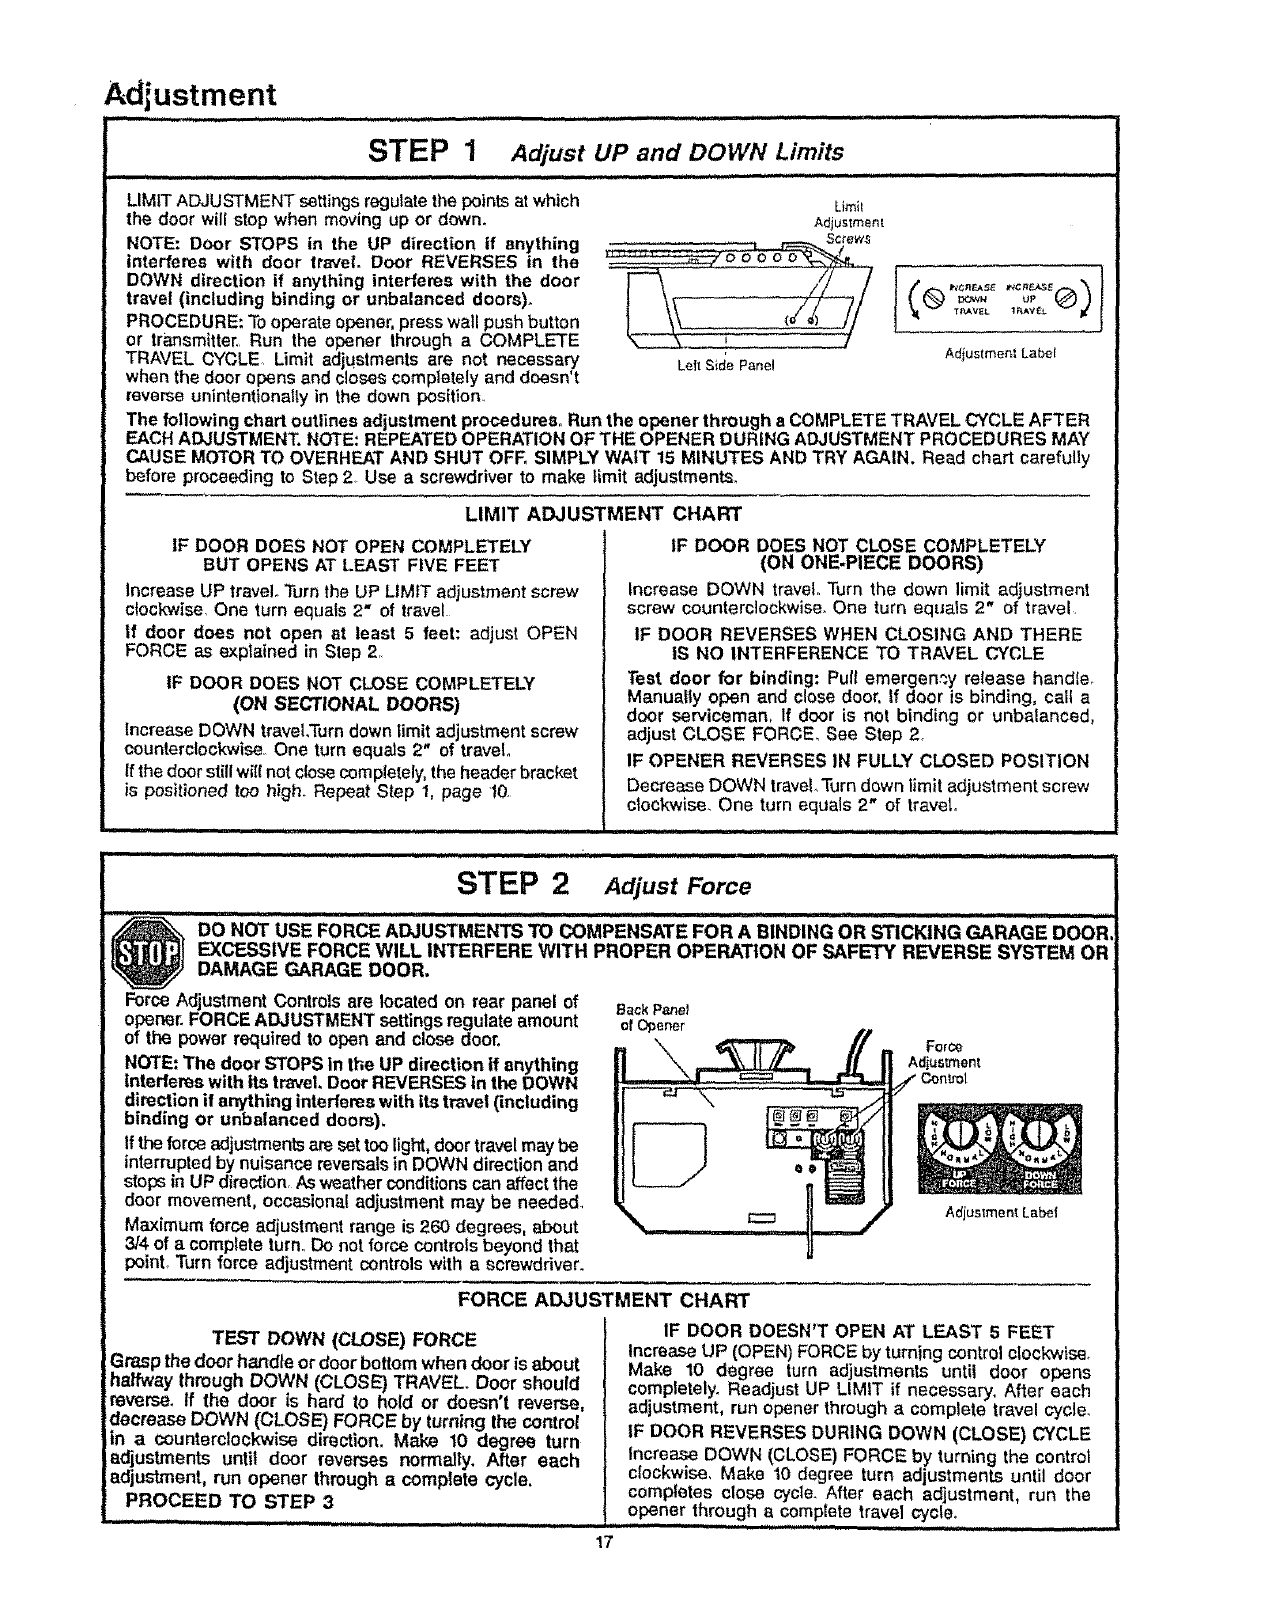 garage door will not closePage 17 of Craftsman Garage Door Opener 13953315SR User Guide